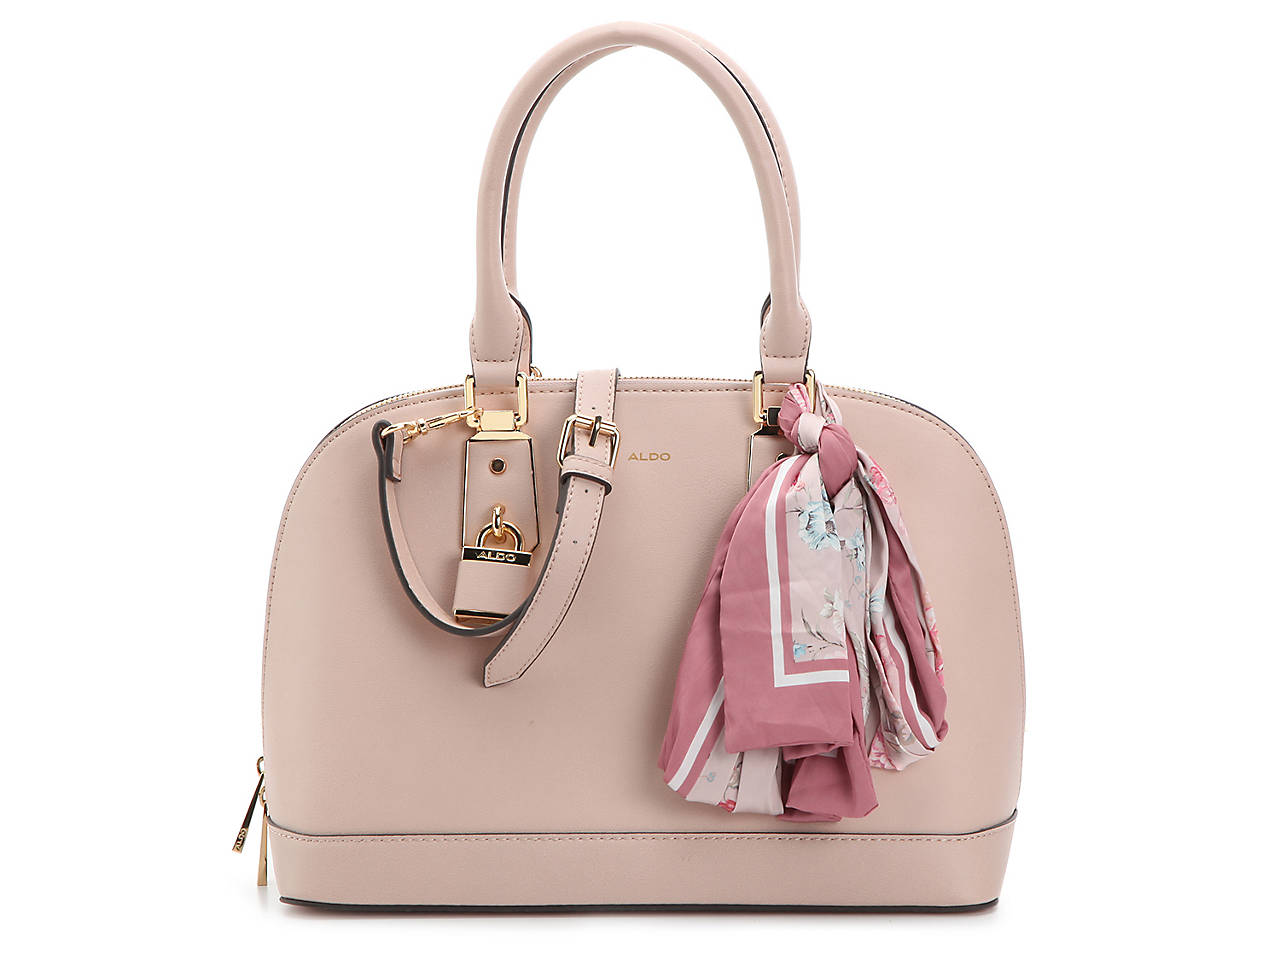 bb9b02464f17 Aldo Yilari Satchel Women s Handbags   Accessories